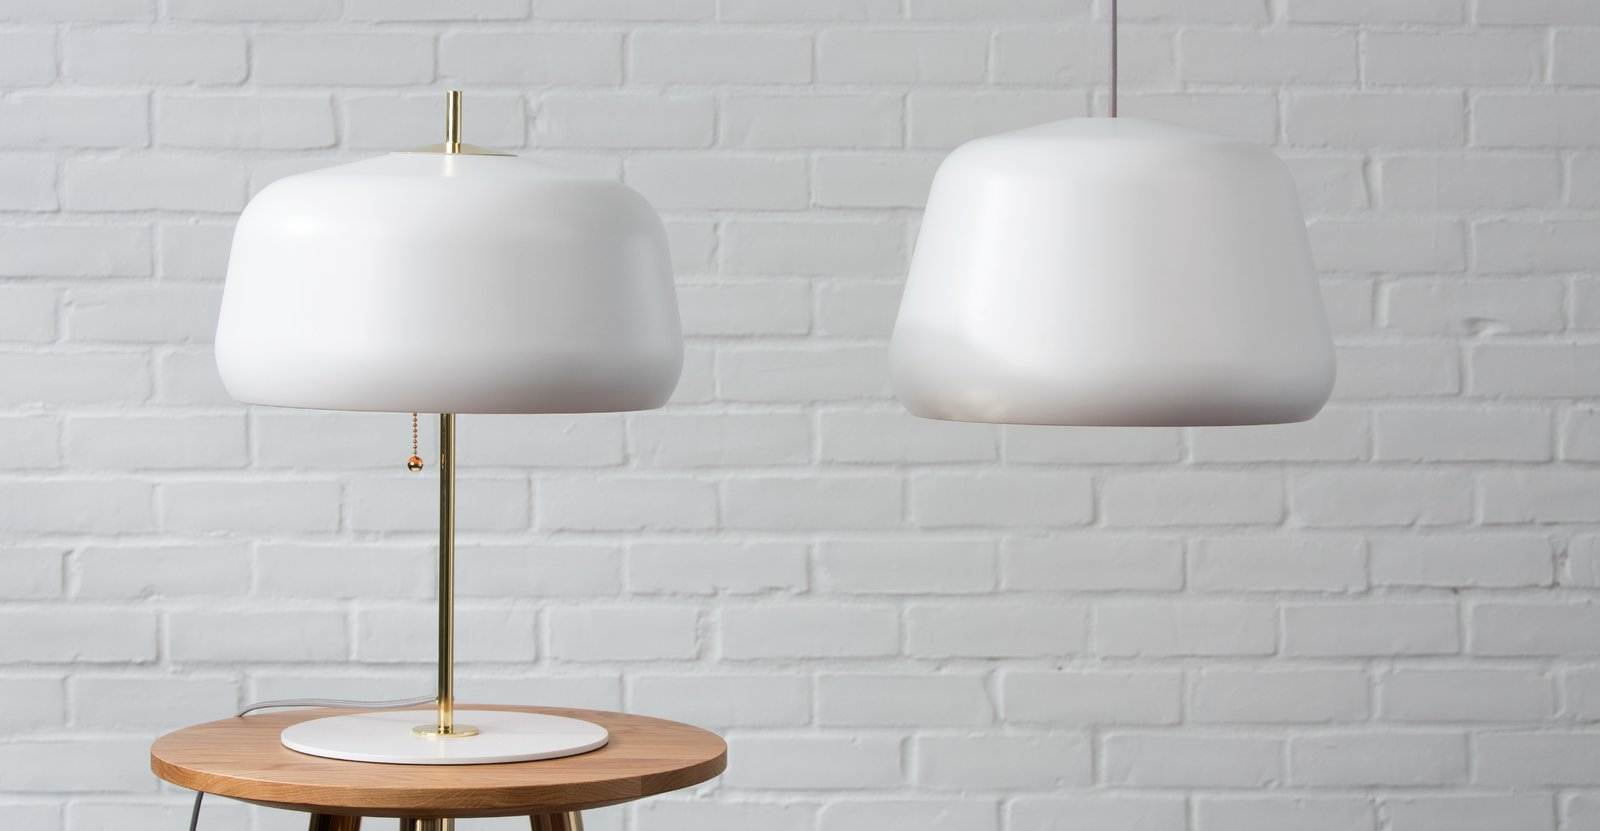 #Atelier #lighting #form #structure #shape #MADE #2015 #AaronProbyn  60+ Modern Lighting Solutions by Dwell from Atelier